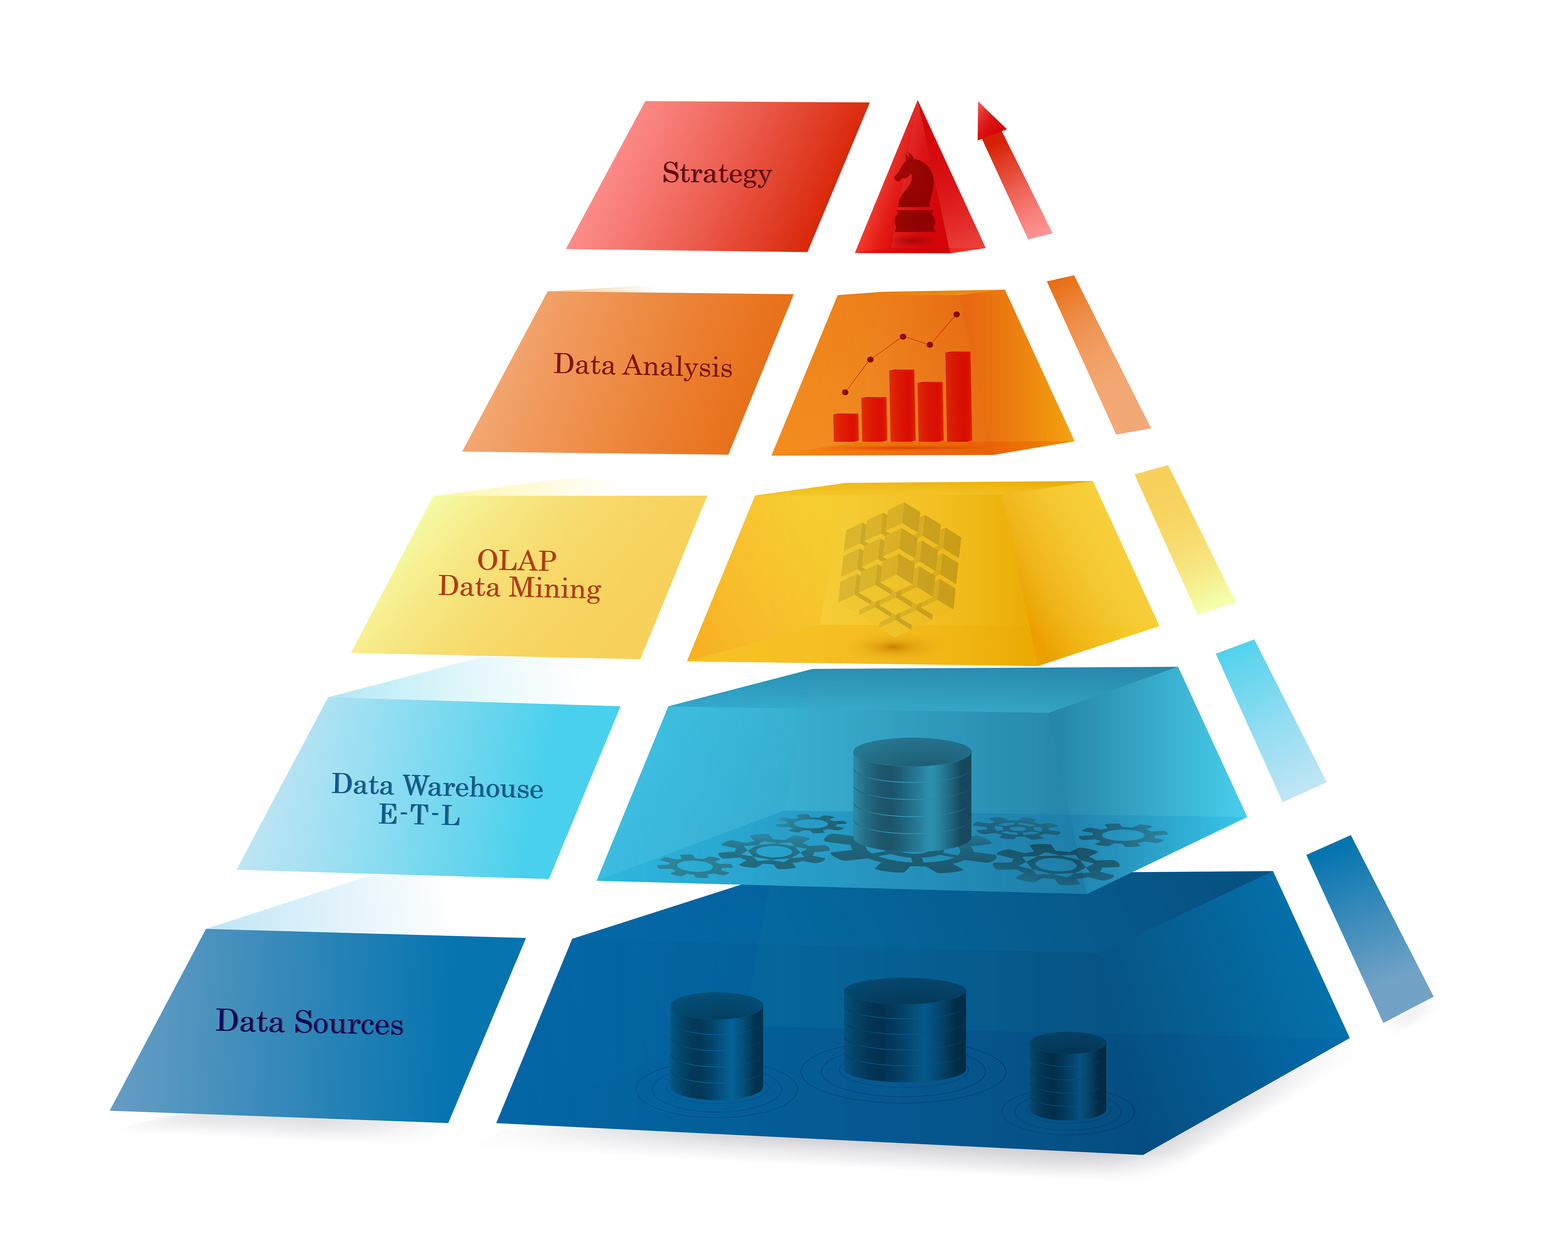 Business Intelligence concept using coloured pyramid design. Processing flow steps: data sources, ETL - data warehouse, OLAP- data mining, data analysis, strategy